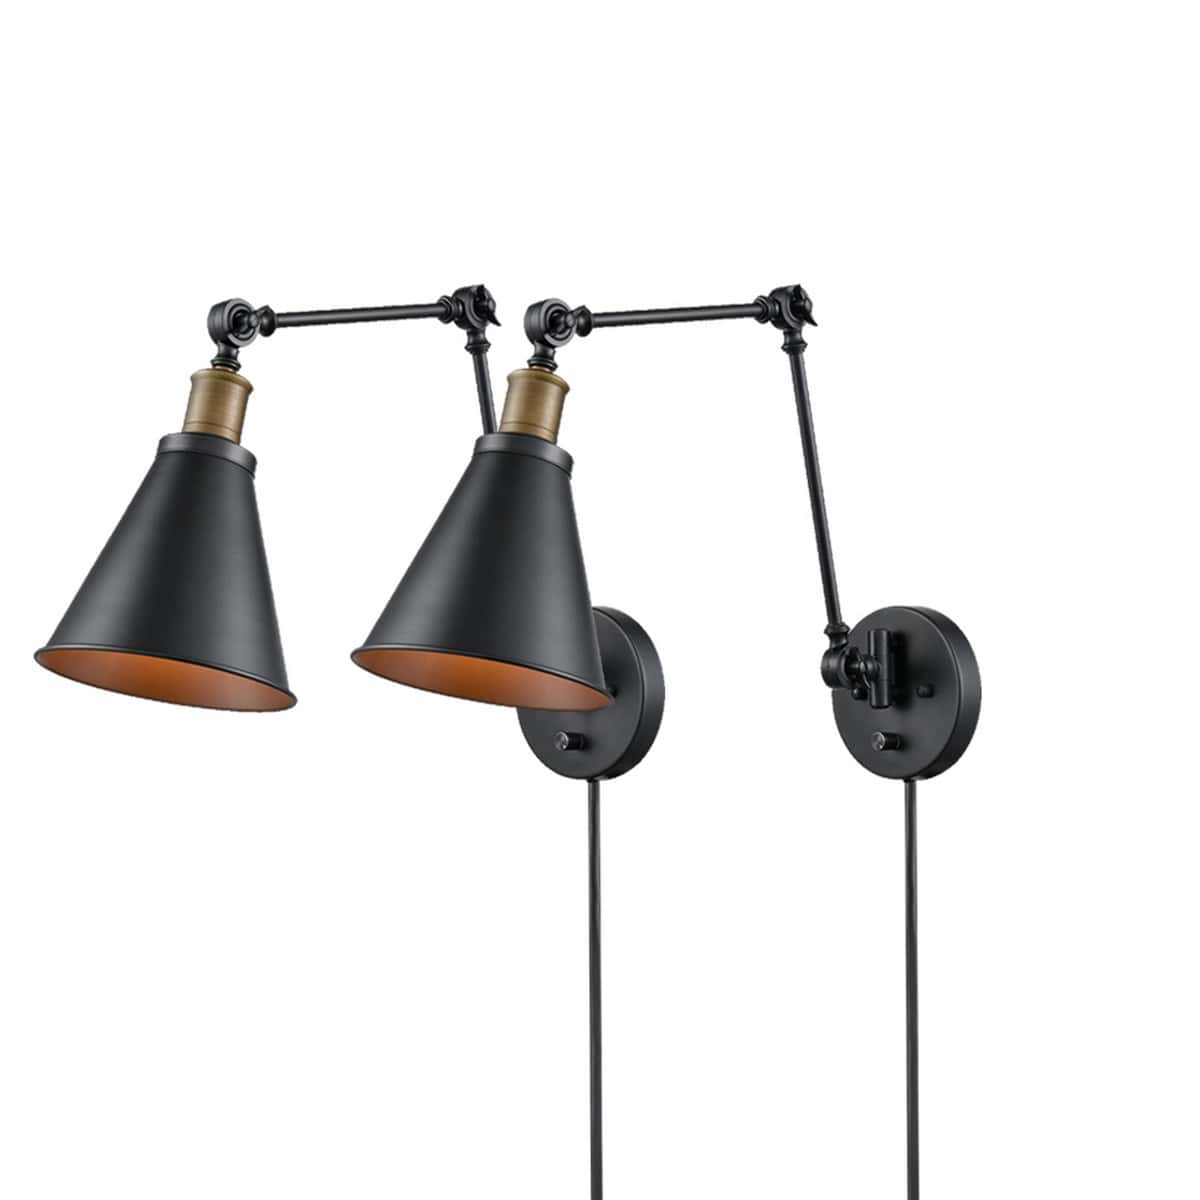 2 Pack Black Swing Arm Hardwired & Plug in Wall Sconces